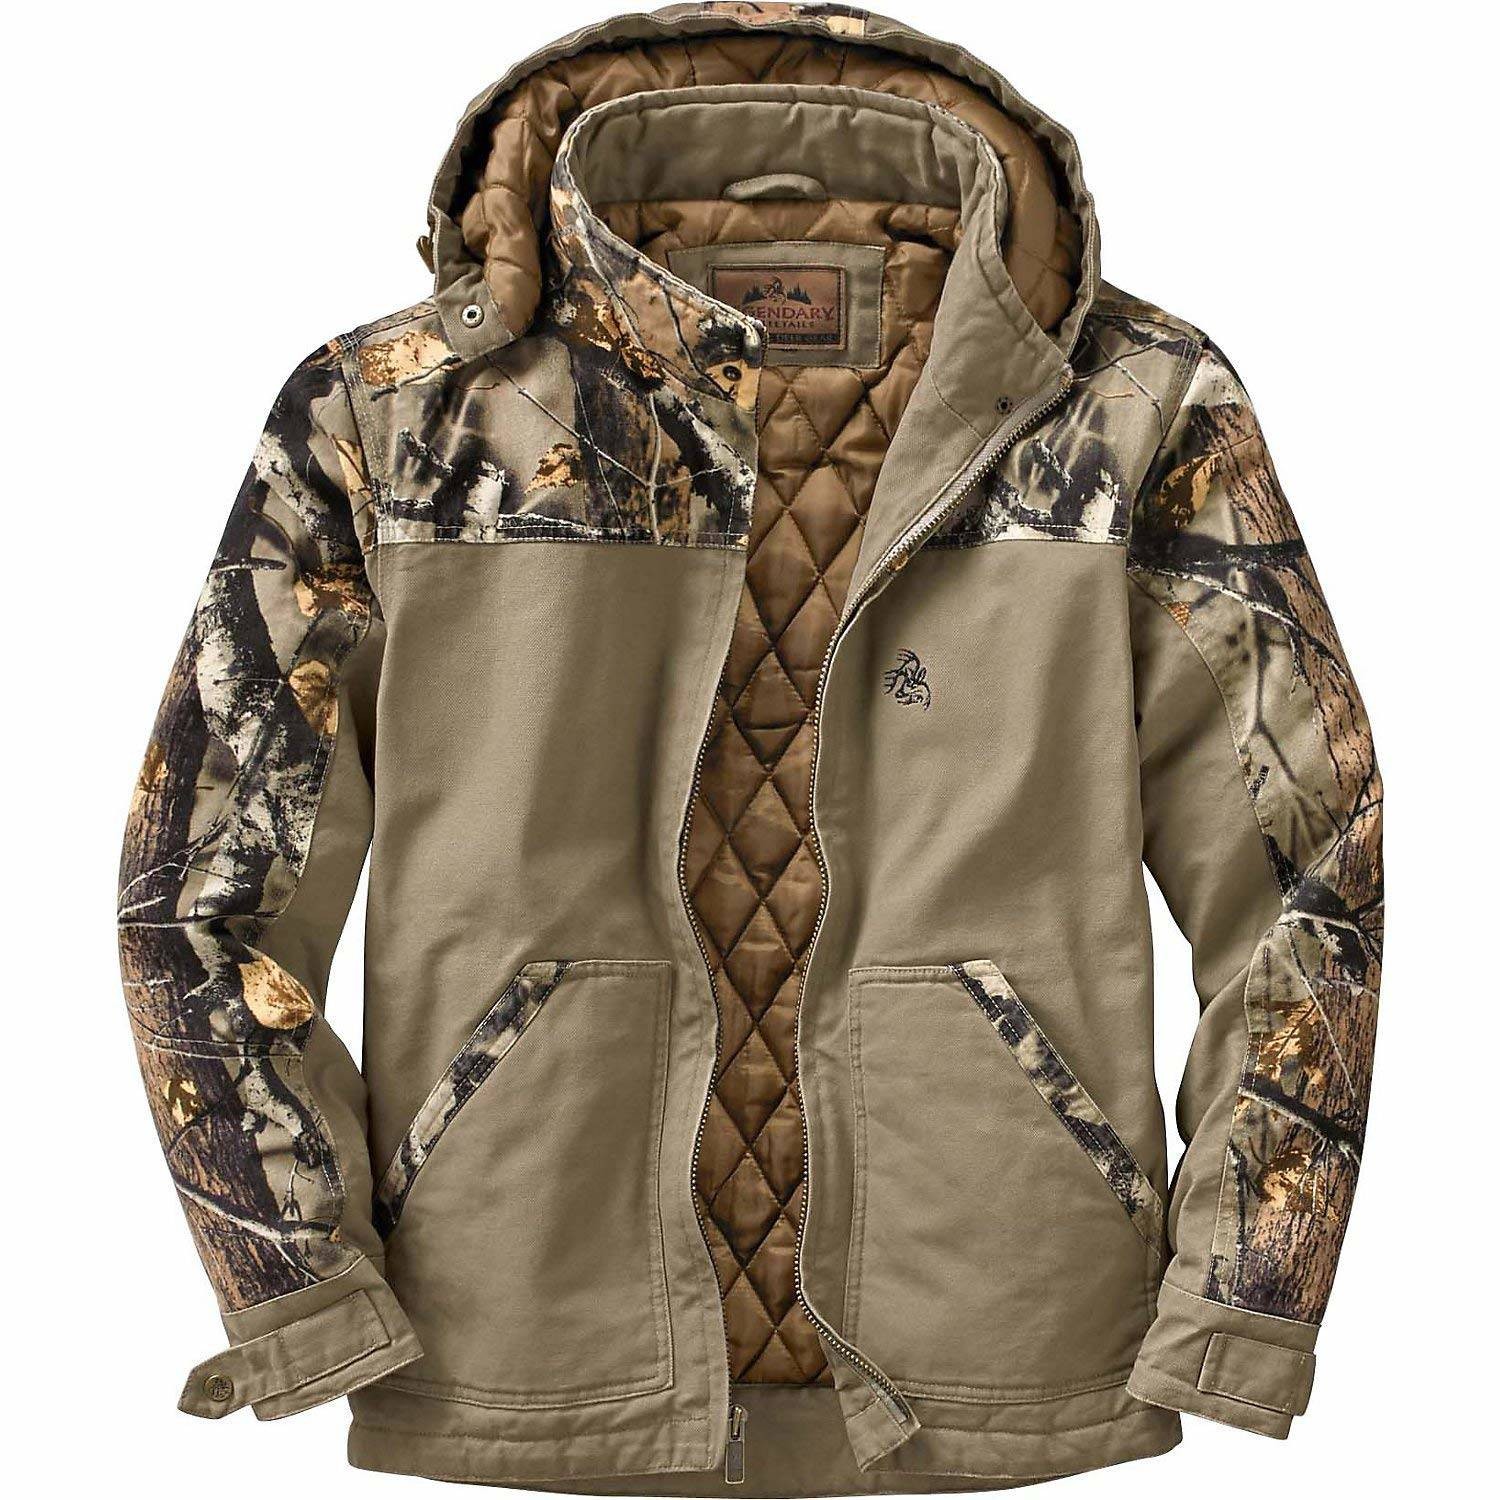 cb841bc64a4e8 Best Hunting Jackets For 2019 – Warm Camo Coats for Cold Weather